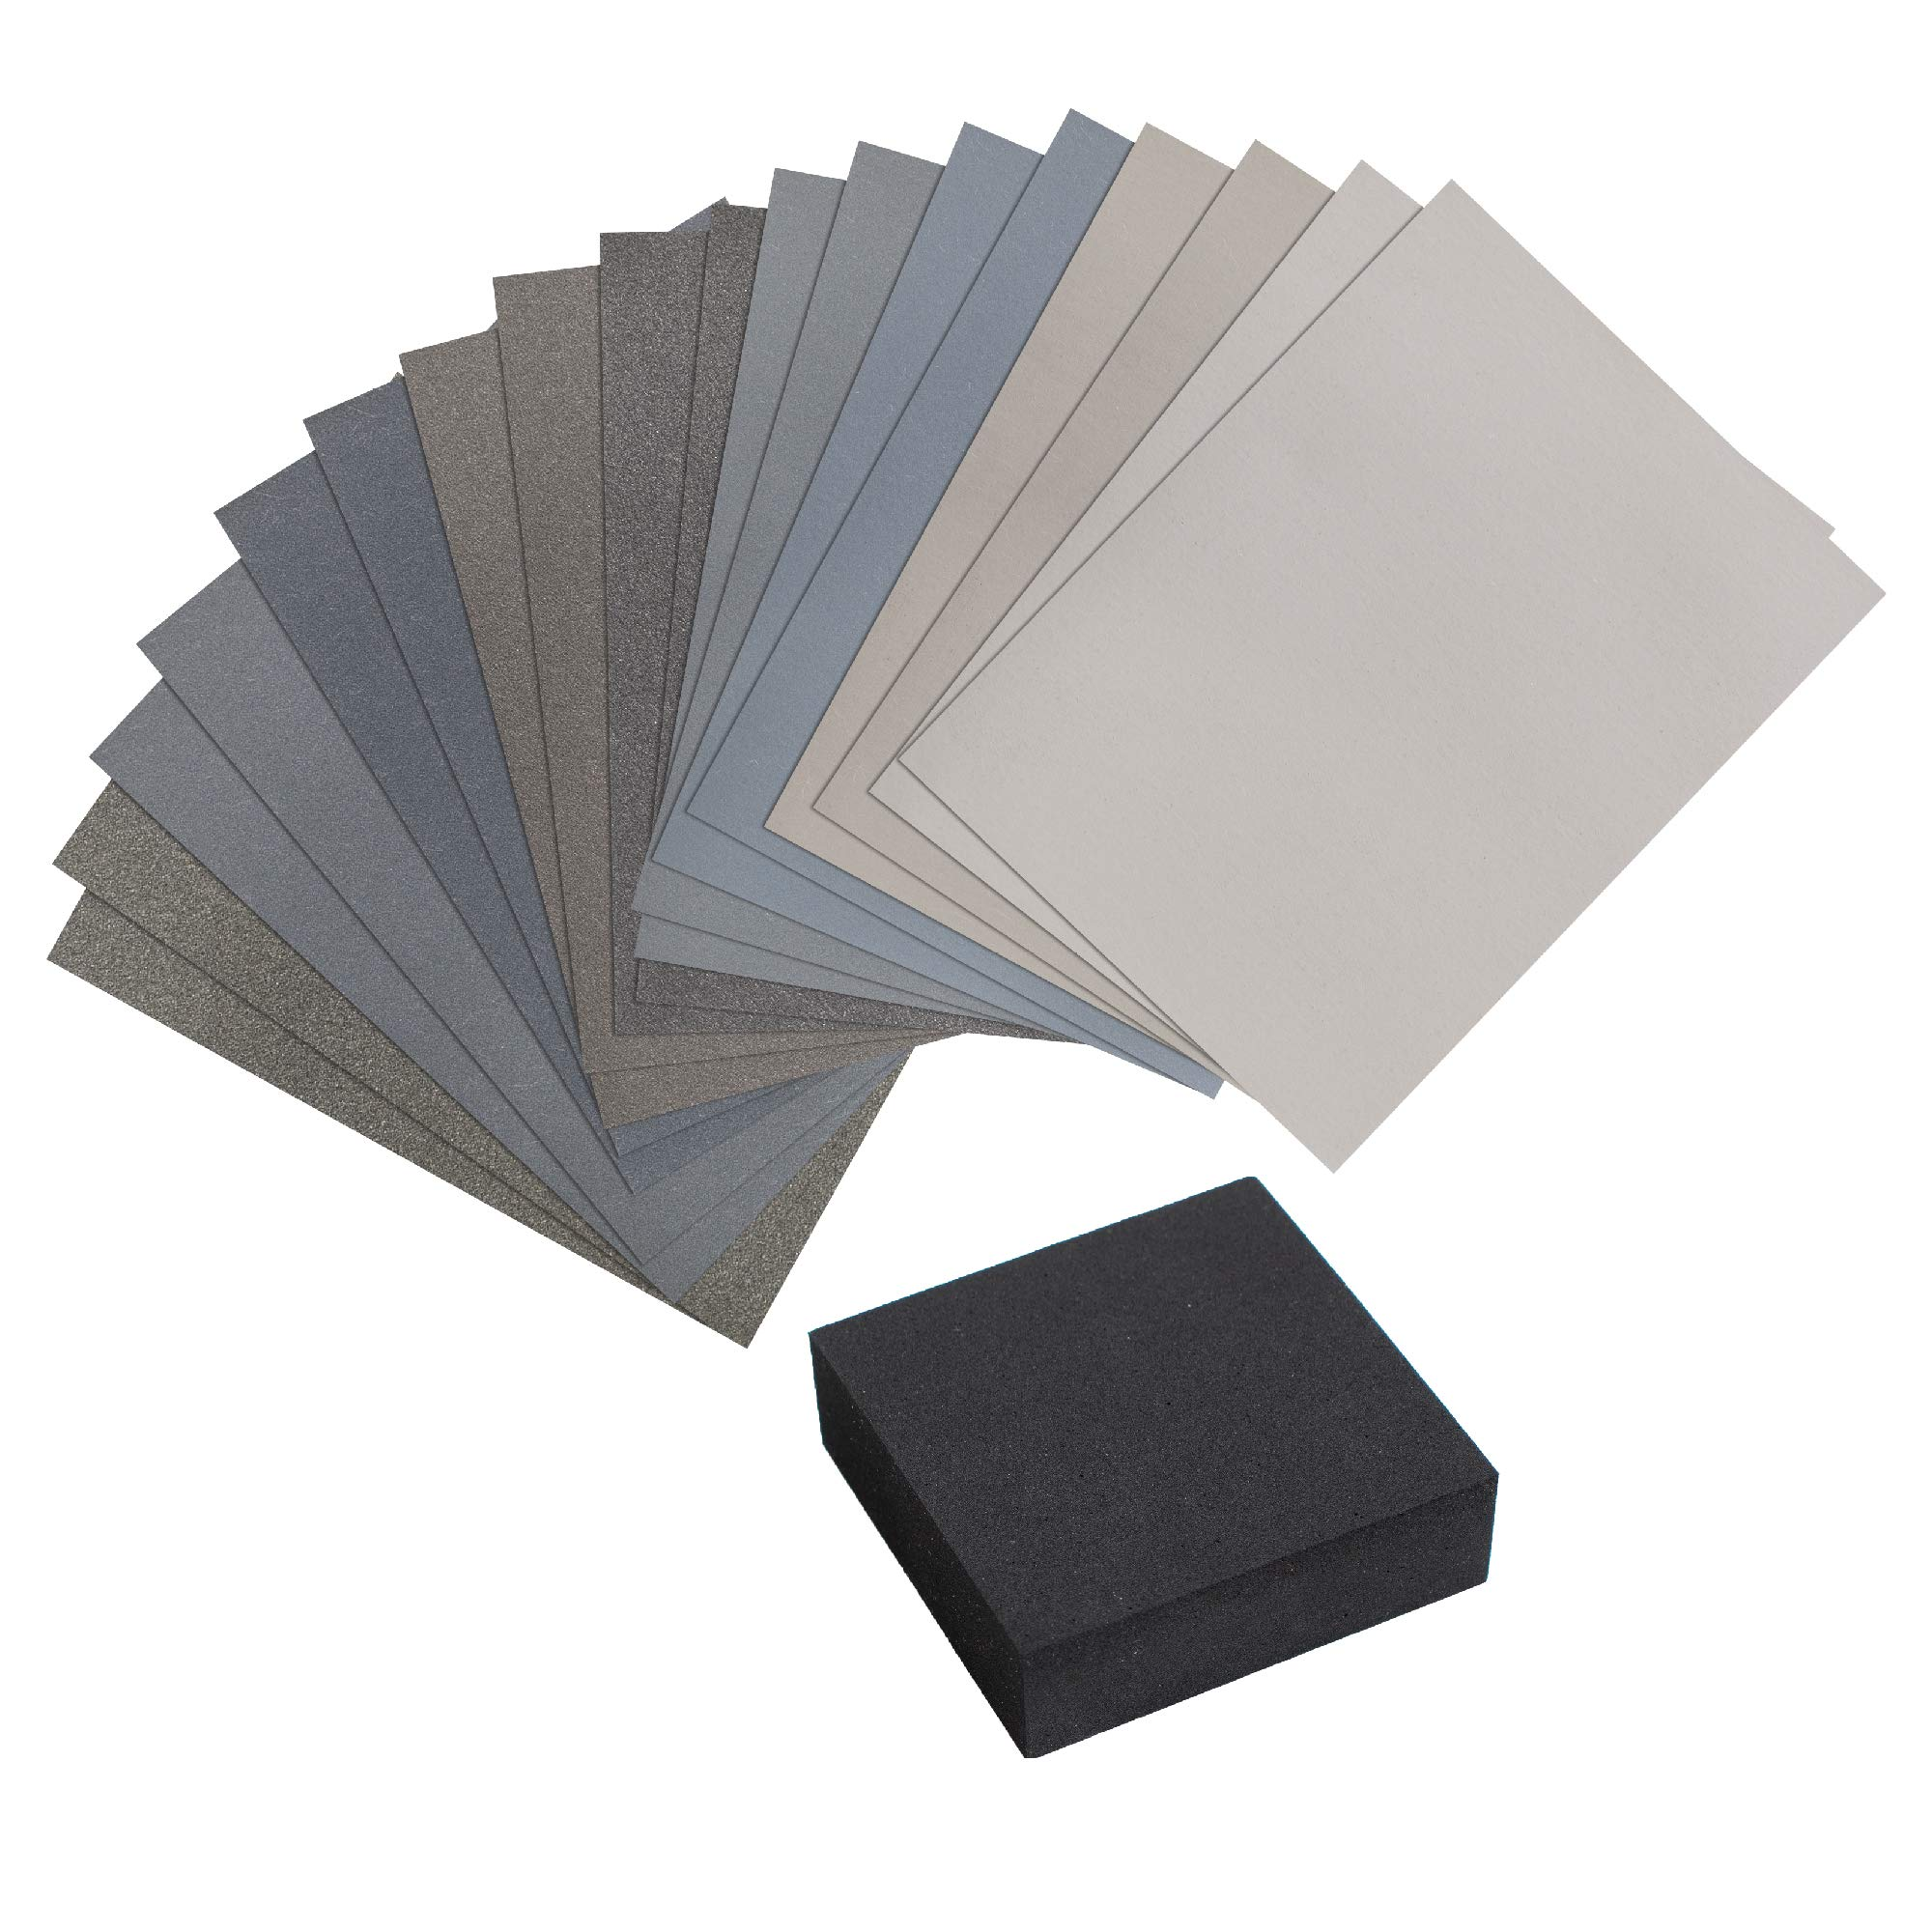 Micro Mesh 19 Piece Woodworkers Pack with 18 Abrasive 3 Inch by 6 Inch Sheets and a Foam Sanding Block